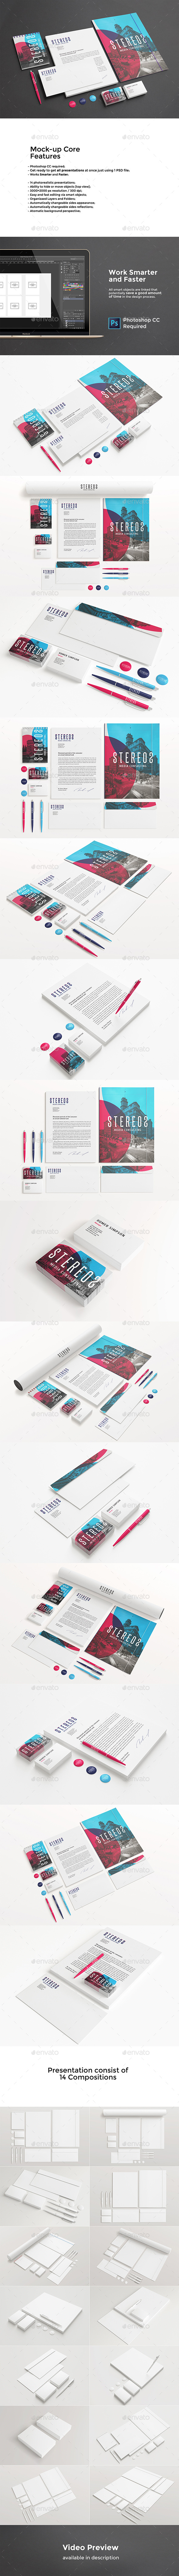 Corporate Identity Mockup PSD / AI (Stationery)